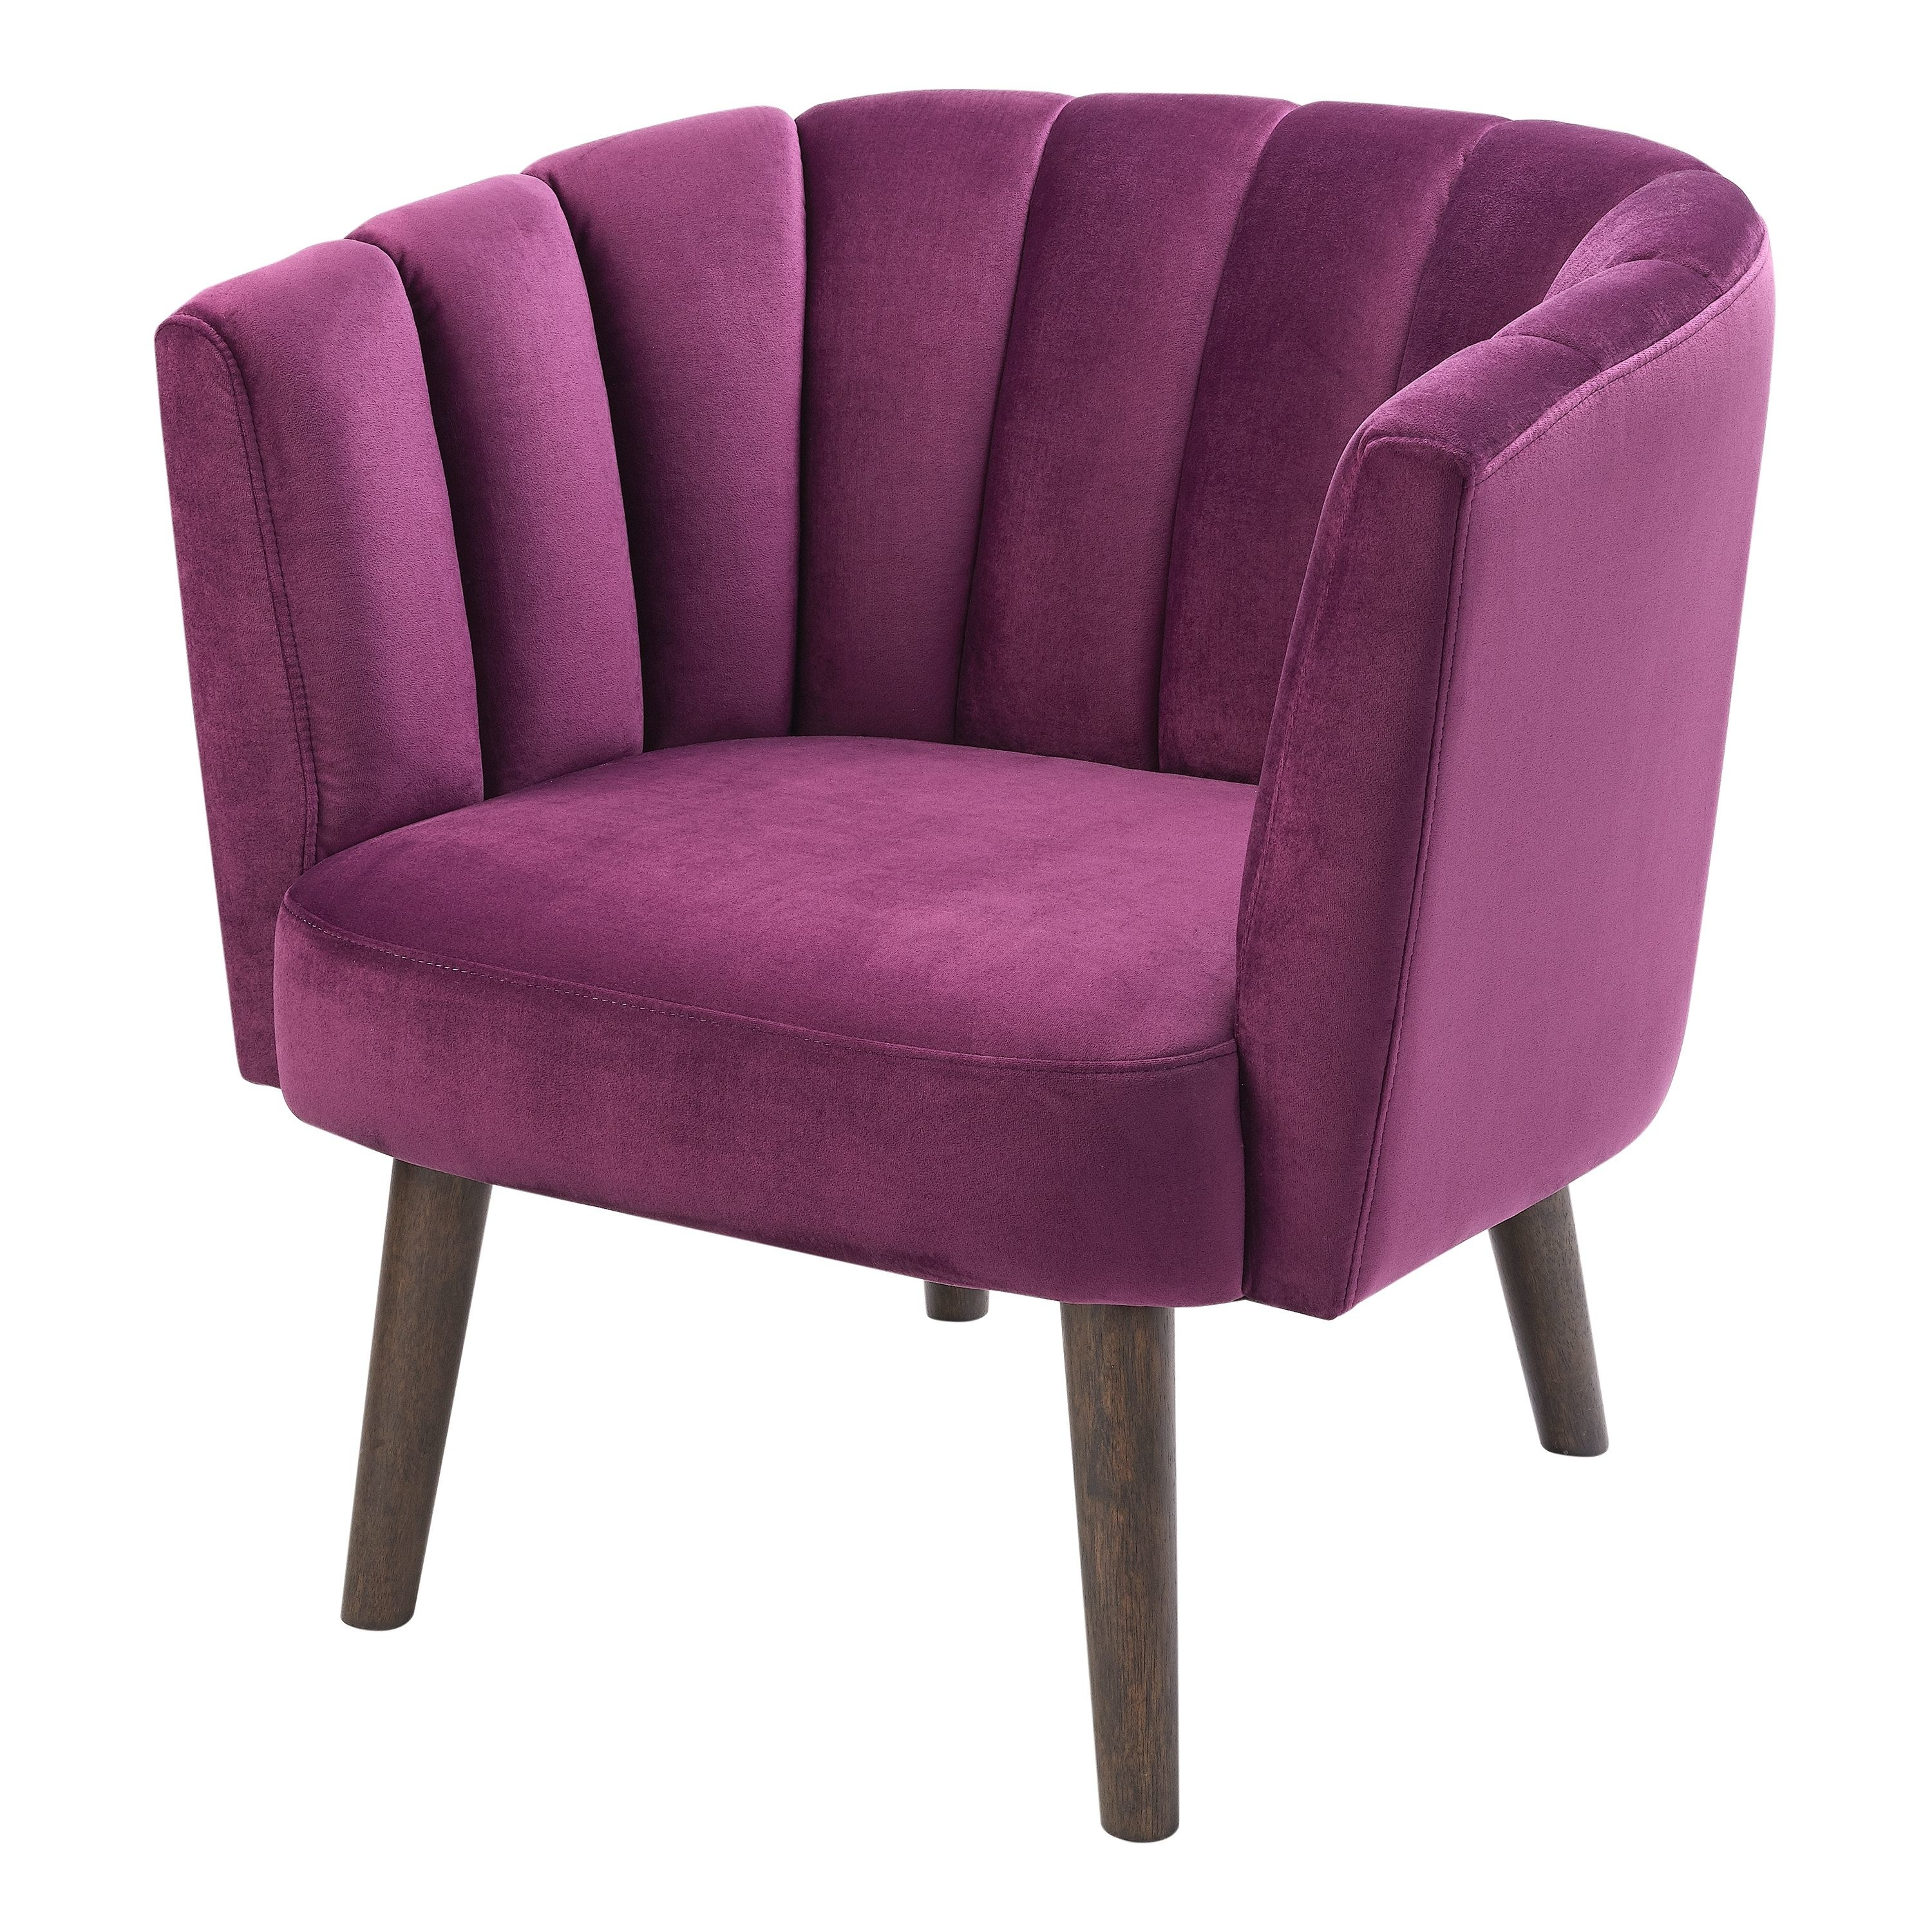 a curved chair in purple with brown wooden legs